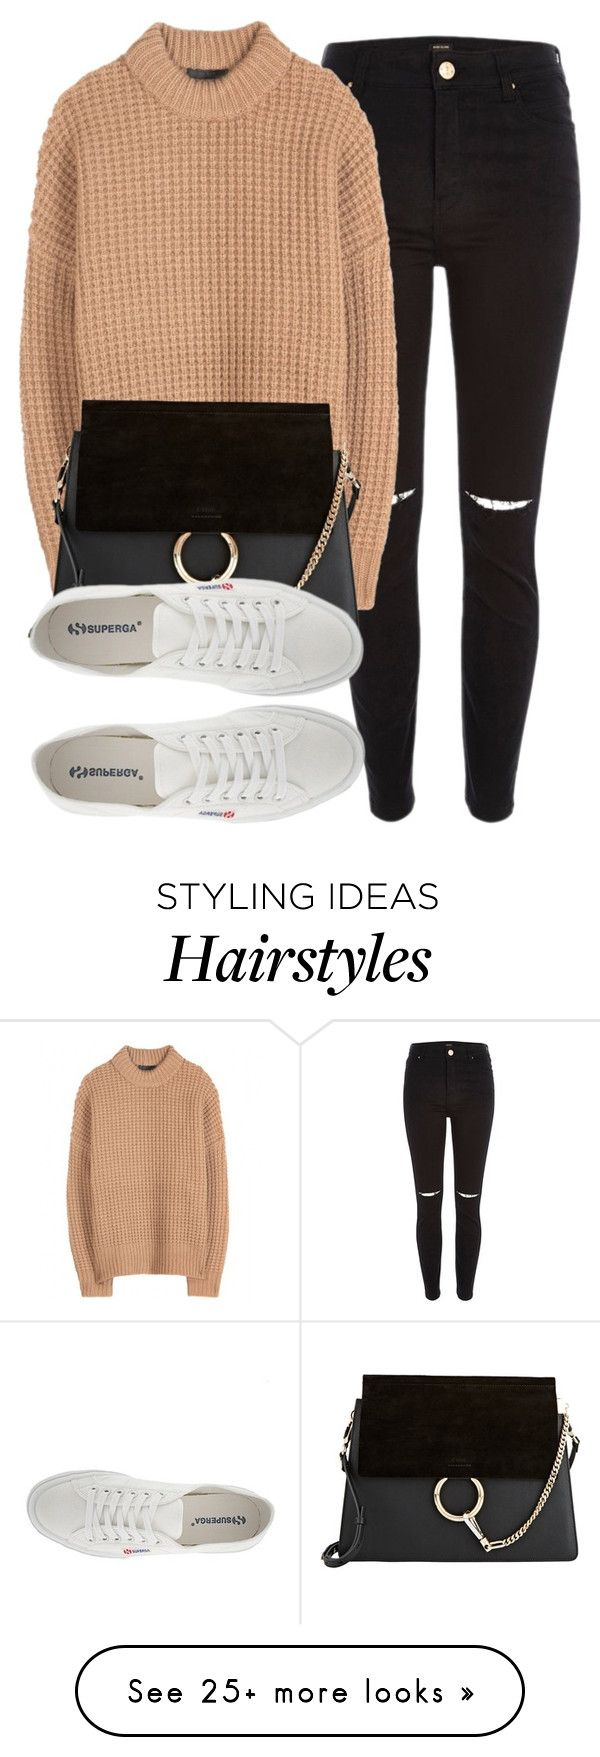 """""""Untitled #4852"""" by laurenmboot on Polyvore featuring River Island, The Row, Chloé and Superga"""